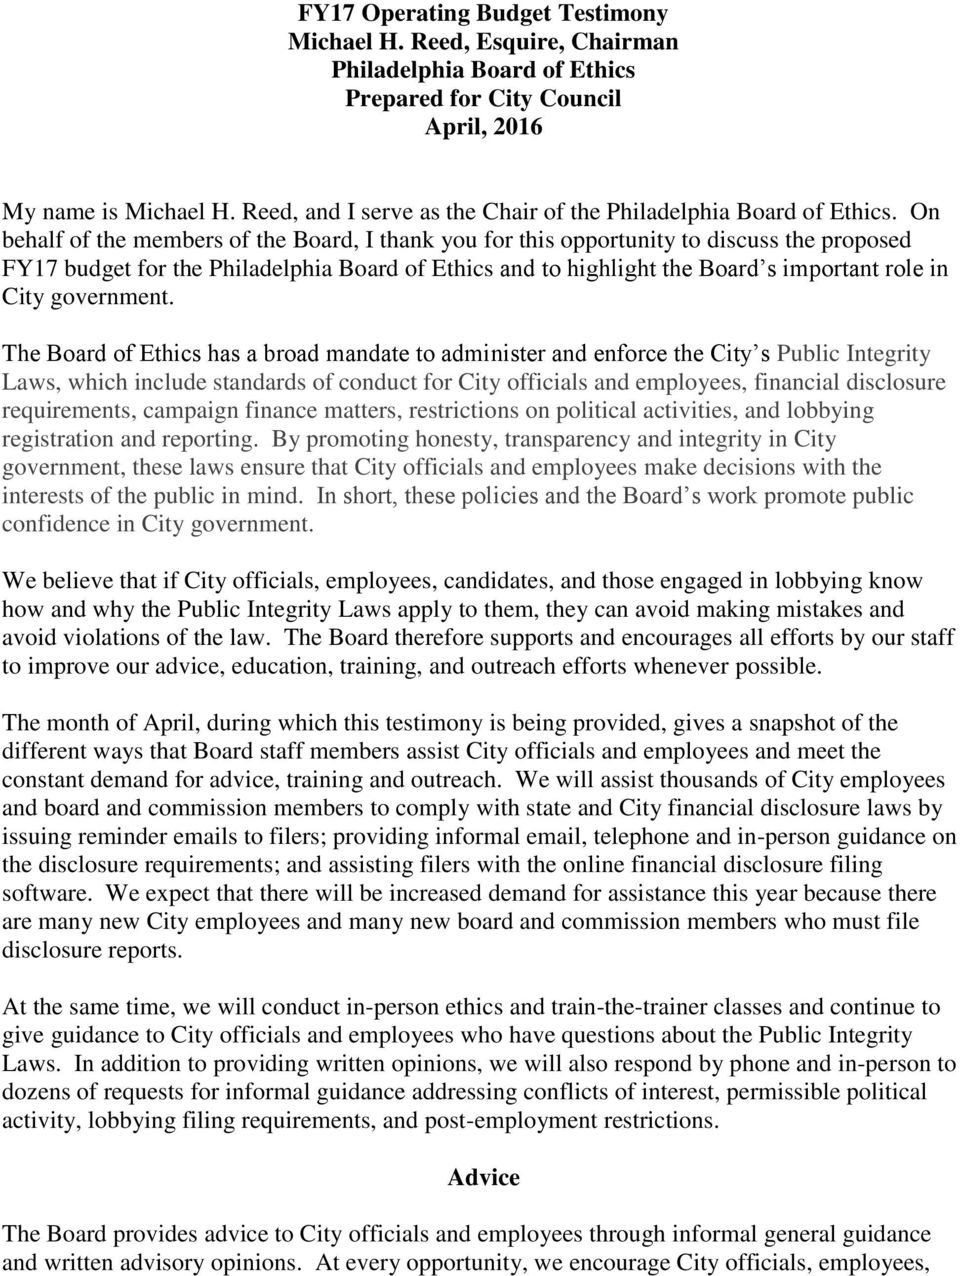 On behalf of the members of the Board, I thank you for this opportunity to discuss the proposed FY17 budget for the Philadelphia Board of Ethics and to highlight the Board s important role in City